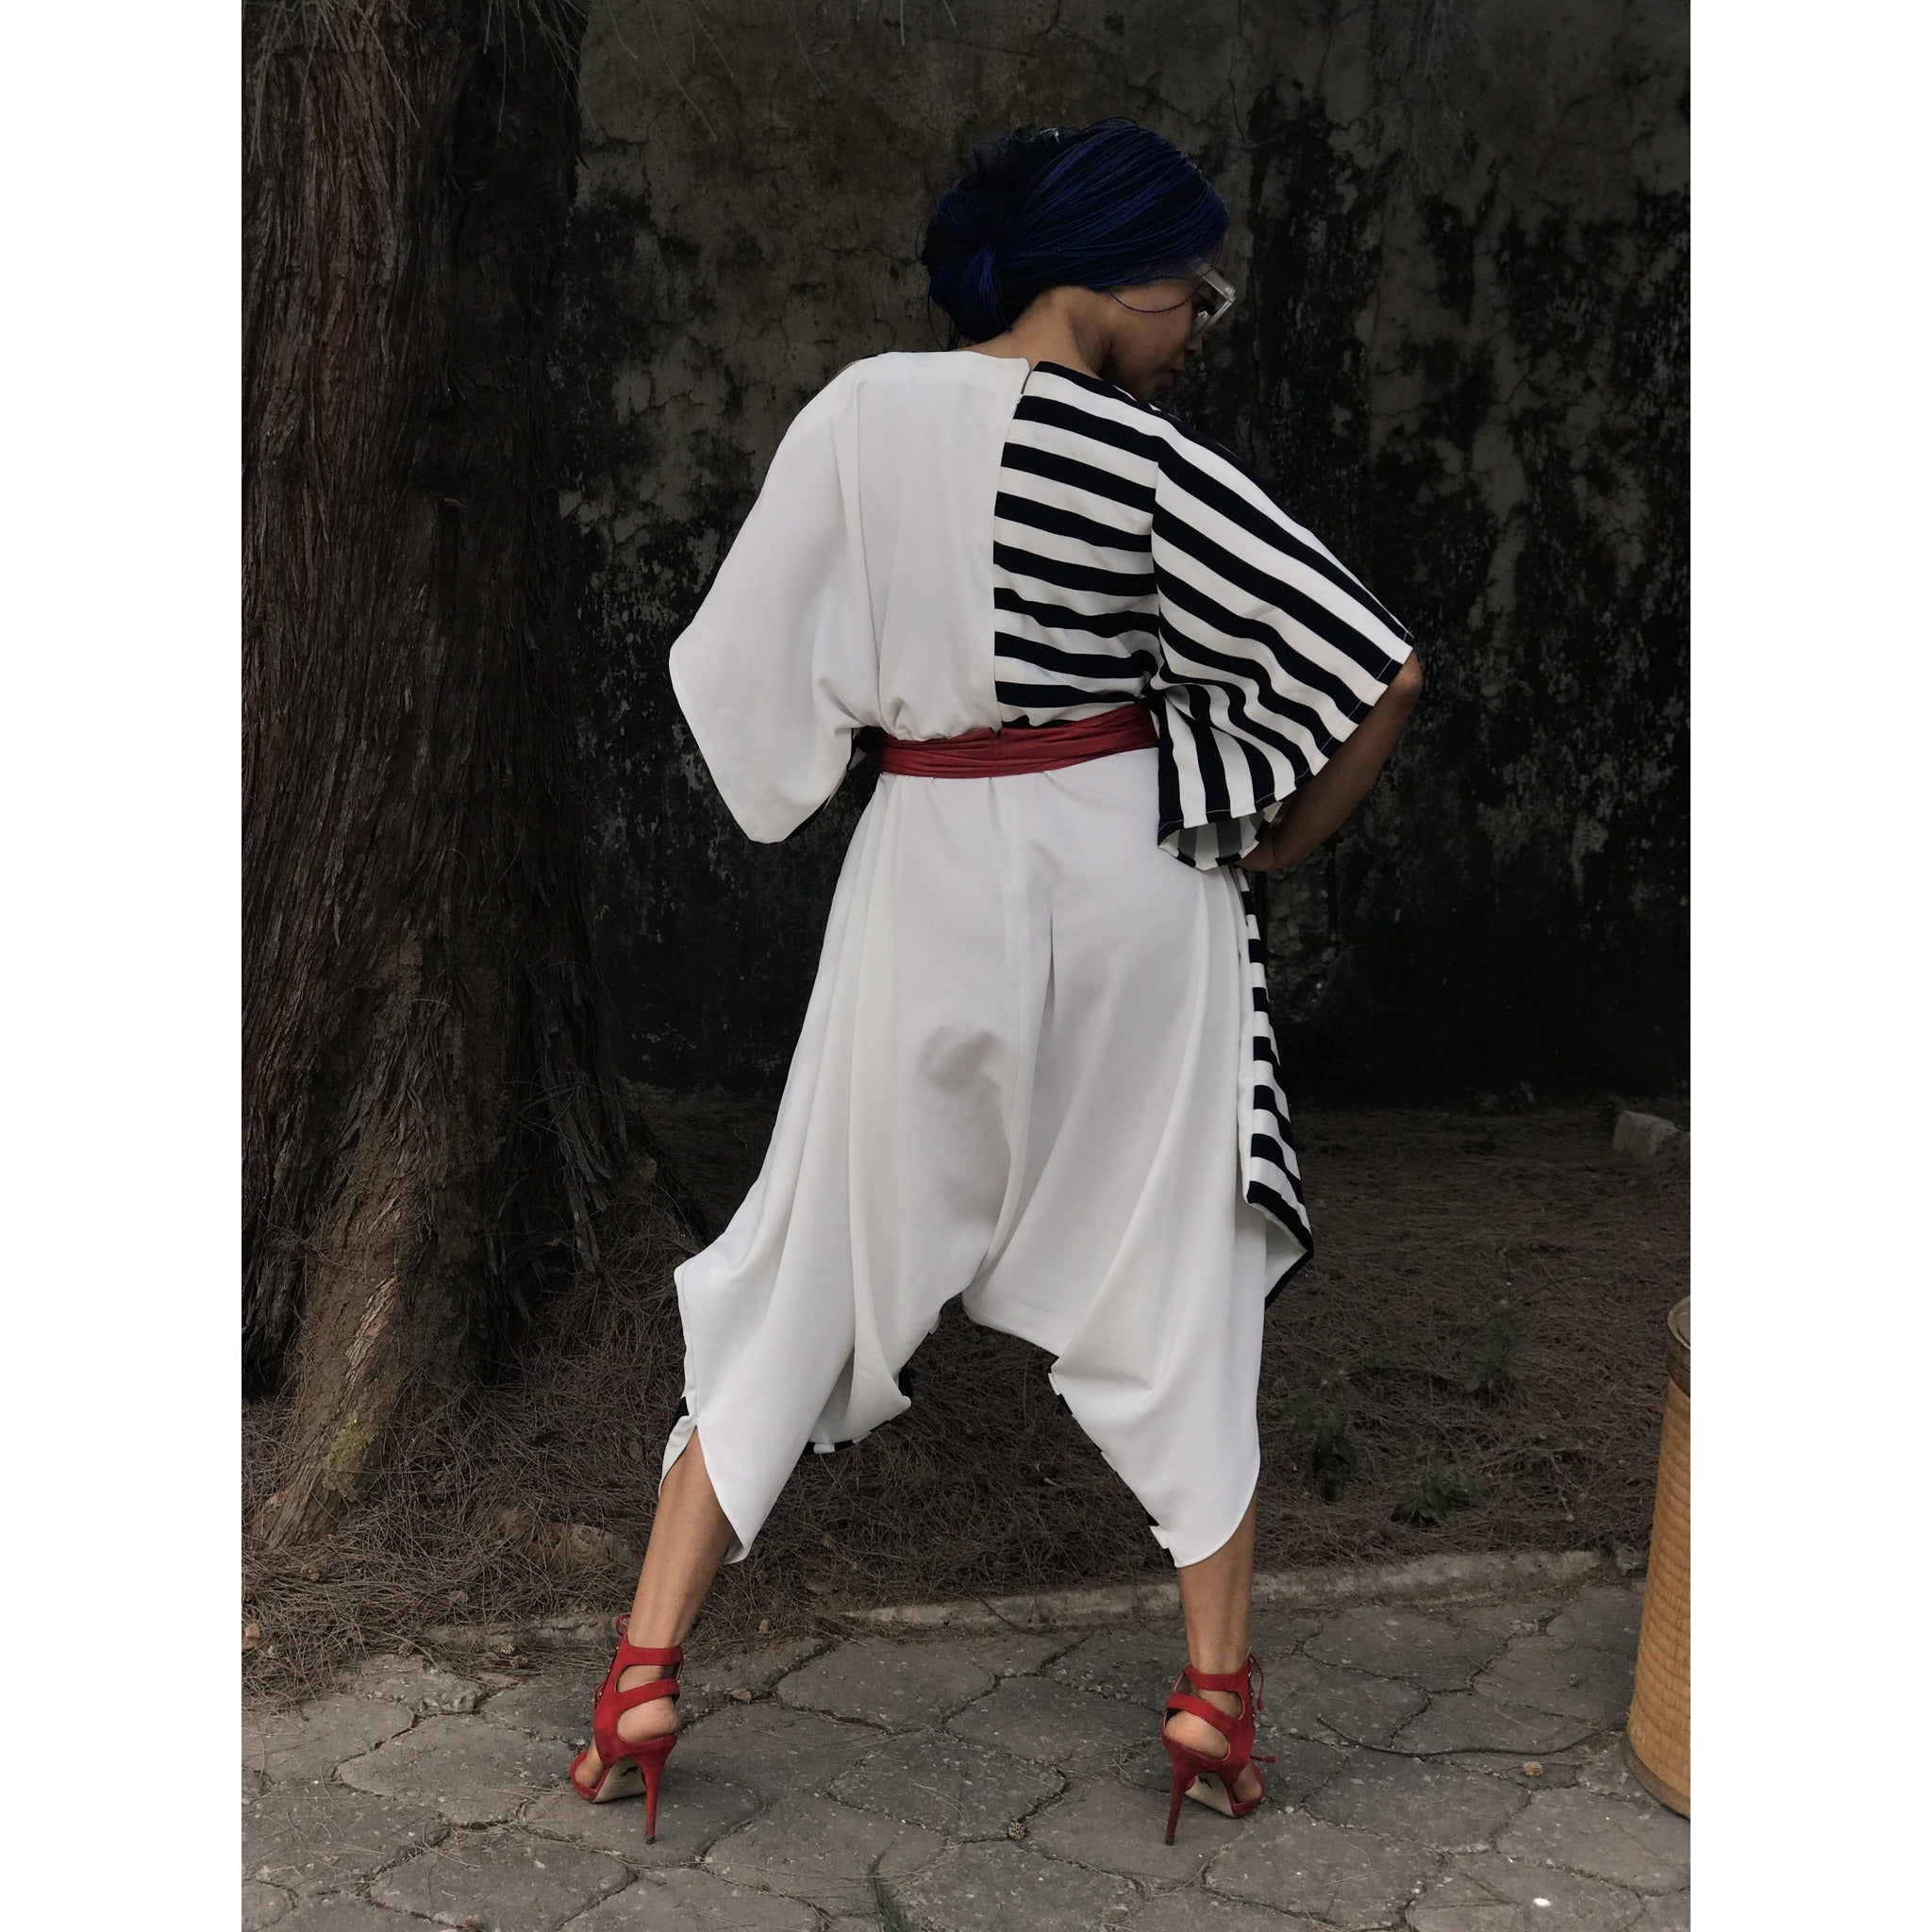 Reversible Favour Essouira in White With Black &White Stripe Détail